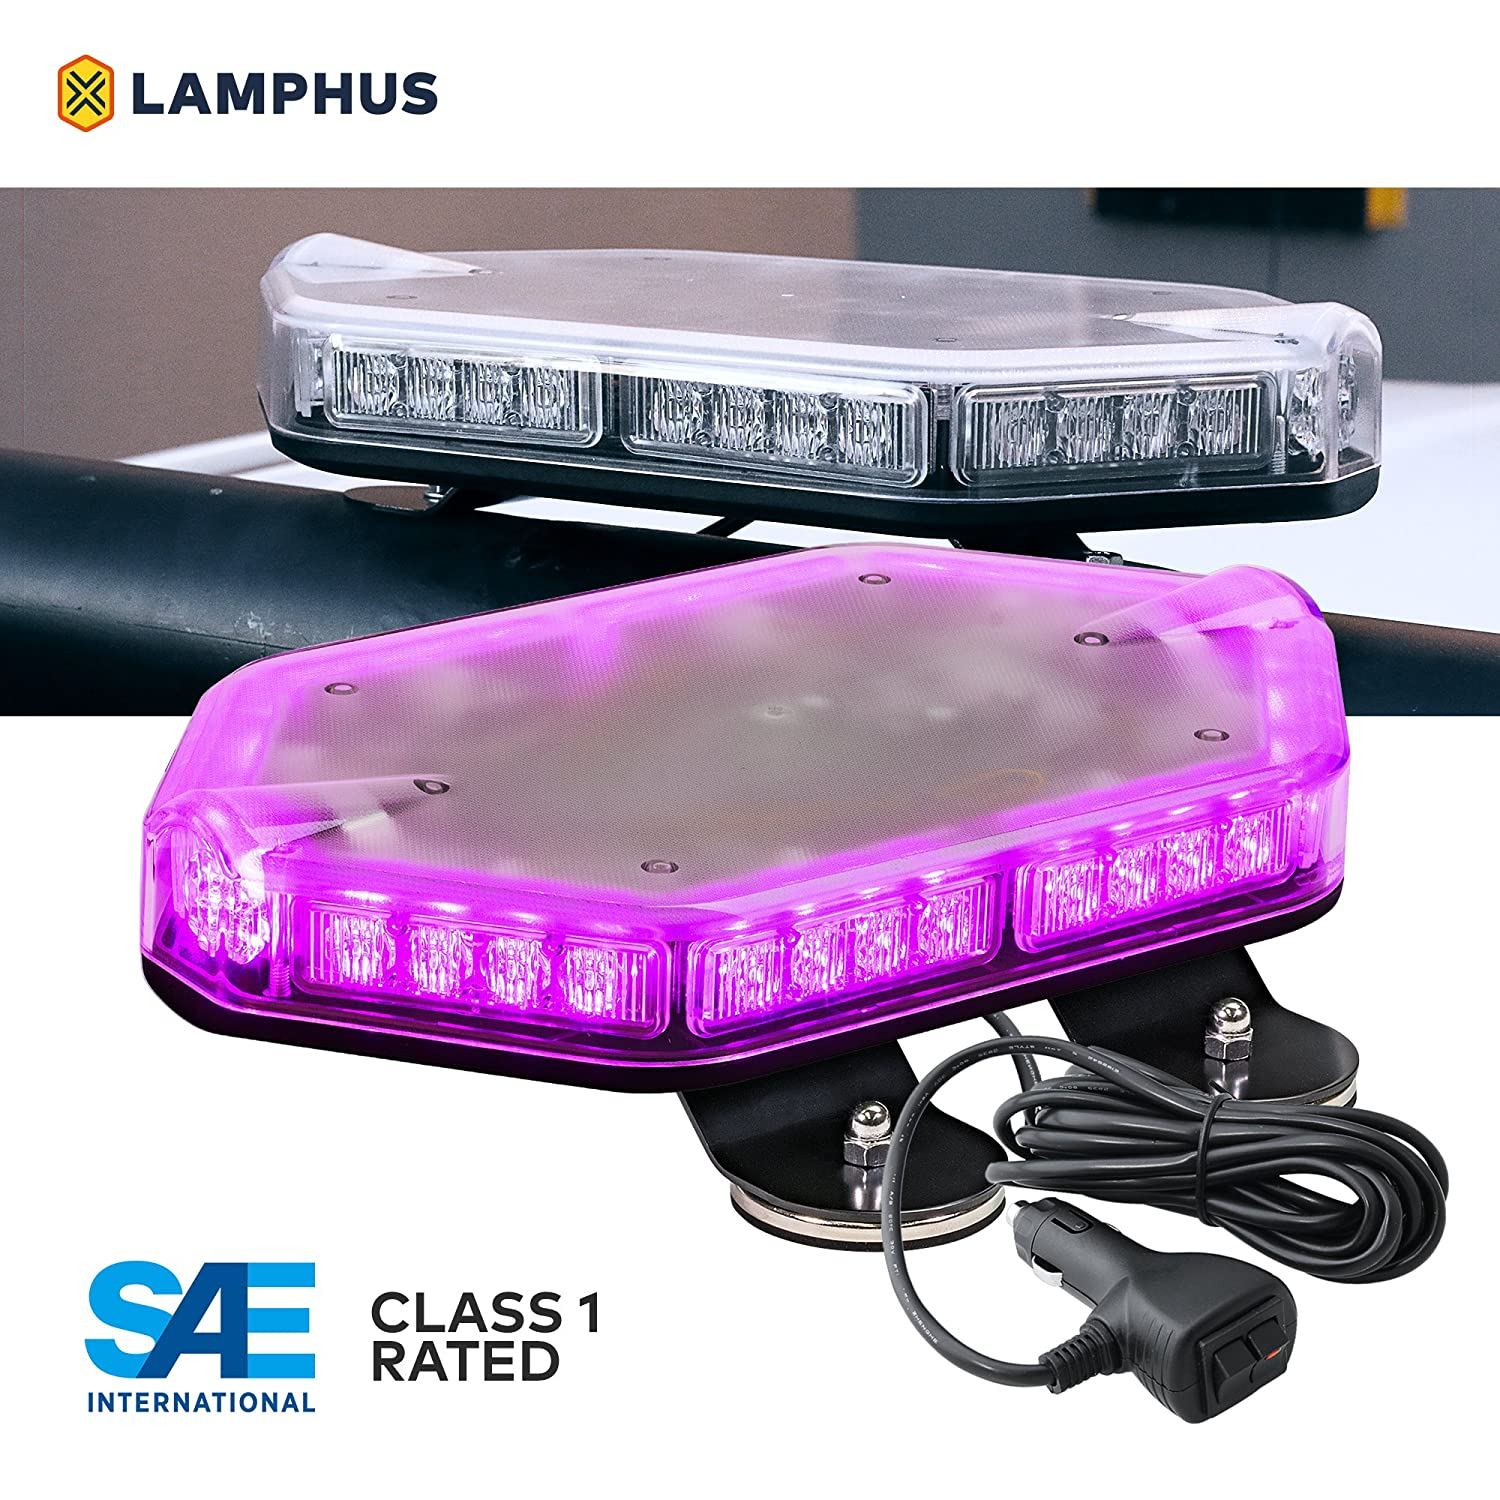 Green SAE Class 1 12ft Cord Magnet//Permanent Mount Emergency Strobe Hazard Warning Light LAMPHUS NanoFlare NFMB56 17 56W LED Mini Light Bar 63 Flash Patterns